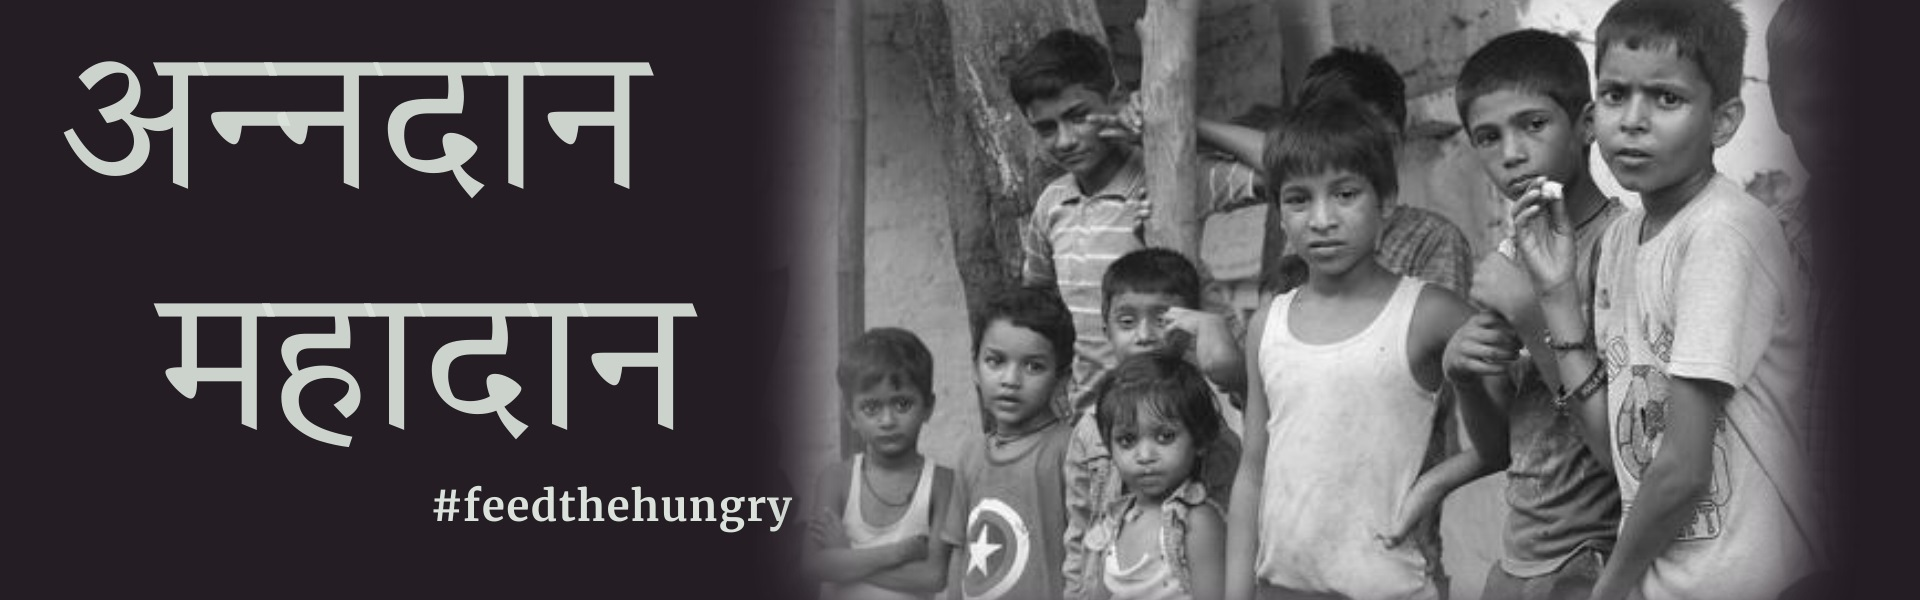 Daily Food Donation Programme Banner